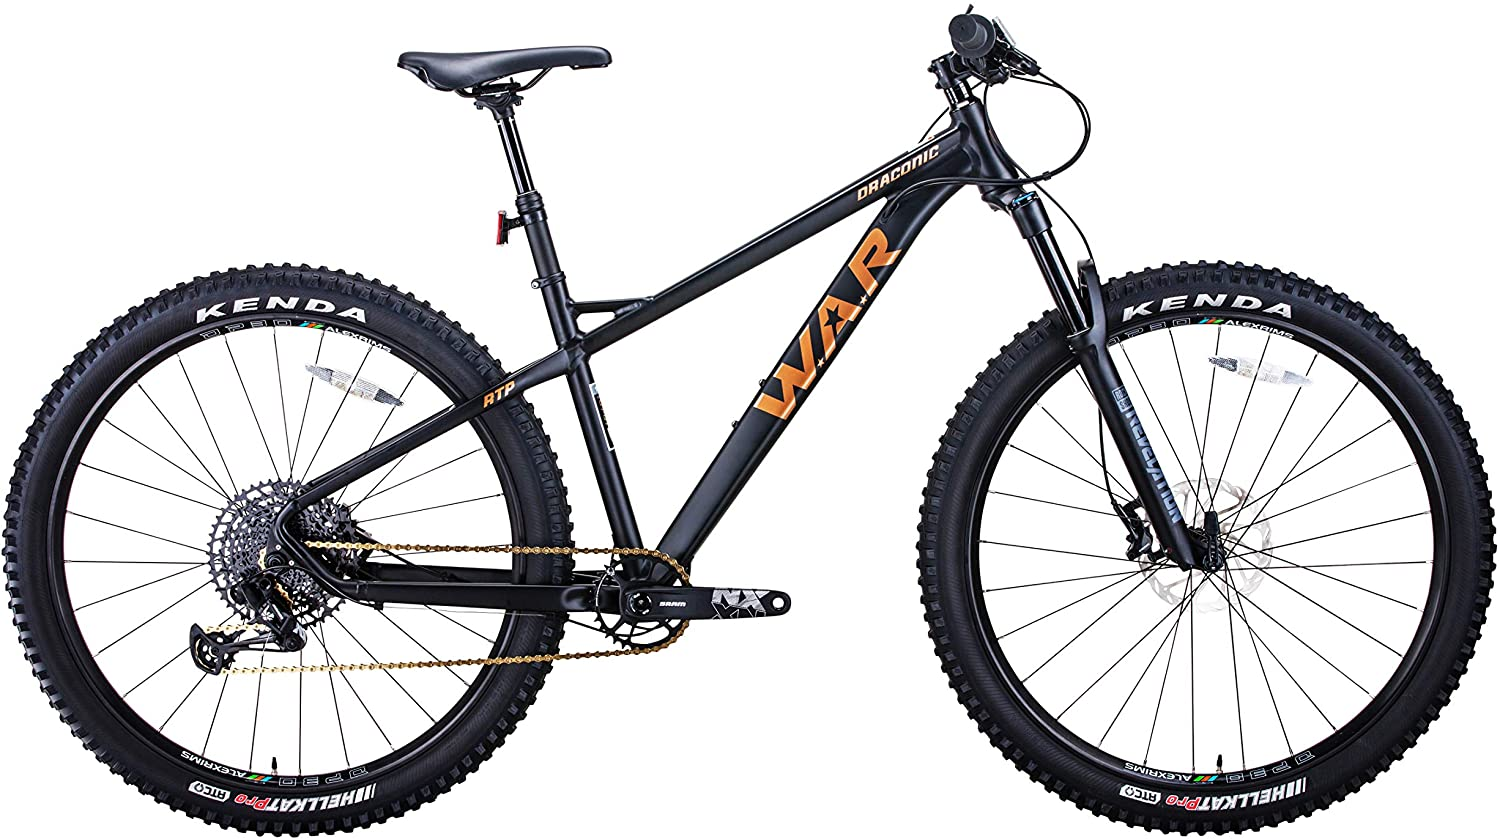 W.A.R Draconic RTP (Rigid Tail Pro) Mountain Bike, 29 inch Wheels, 6061 Aluminum High Performance Frame, 12 Speed Hardtail in S, M, L and XL Frame Size.